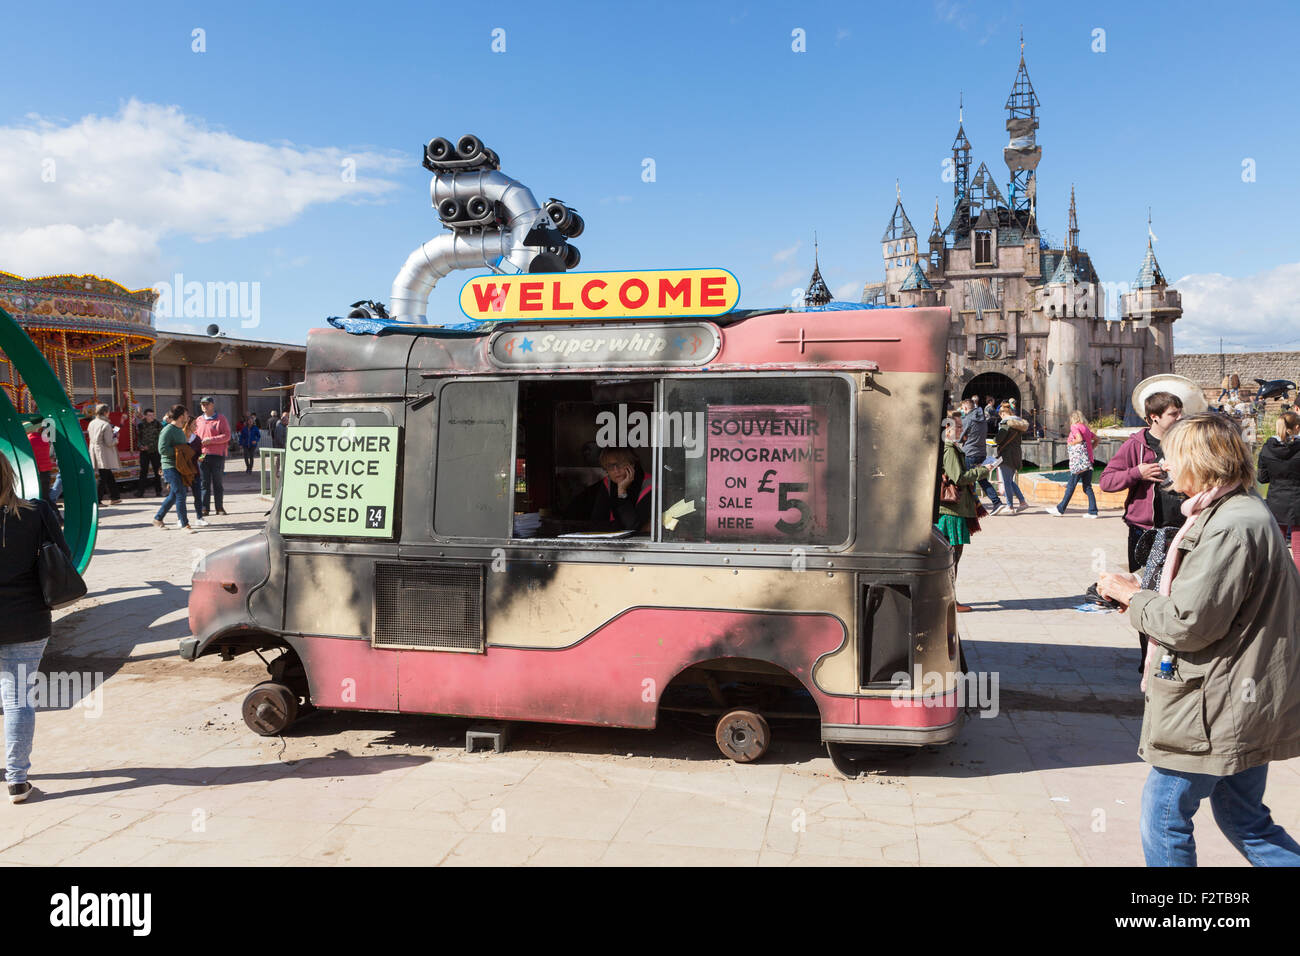 Dismaland : Bemusement Park. Weston-super-Mare. A burnt out ice cream van welcomes visitors. - Stock Image